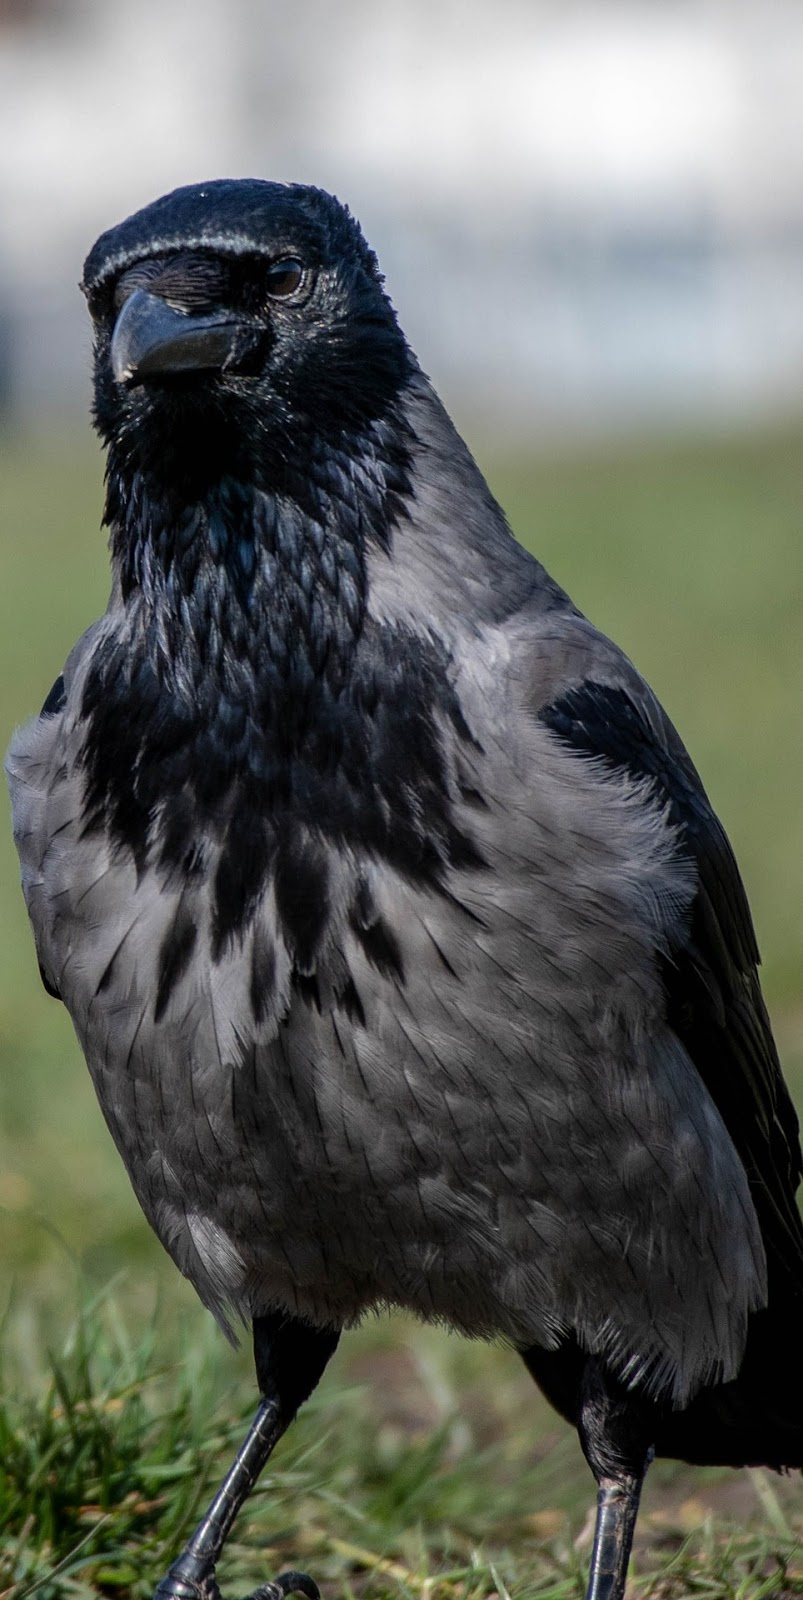 A bird with black and grey plumage.